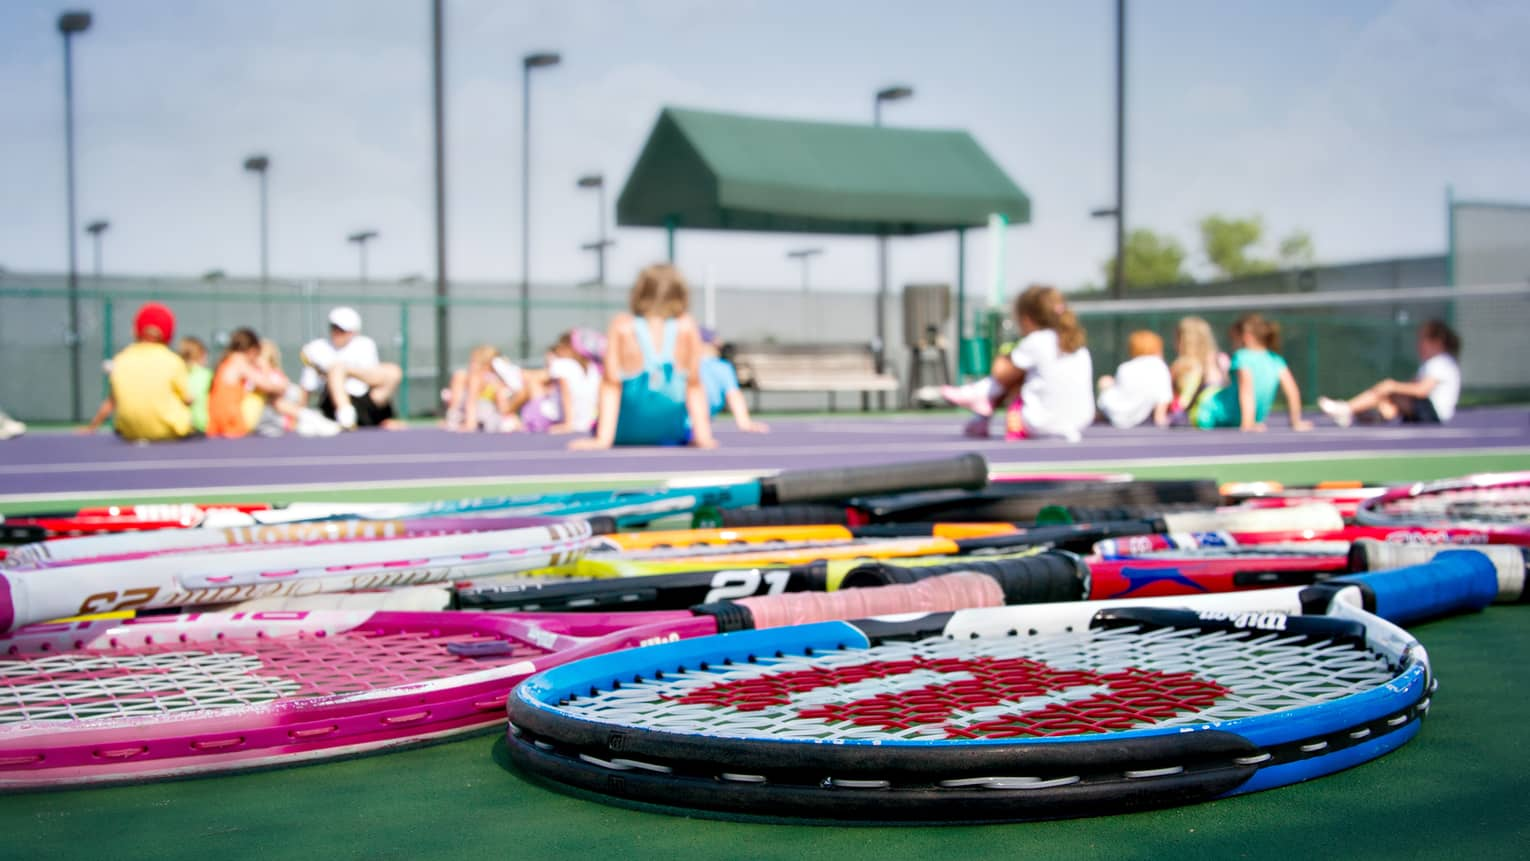 Colourful tennis rackets lying on ground, children sit cross-legged on court